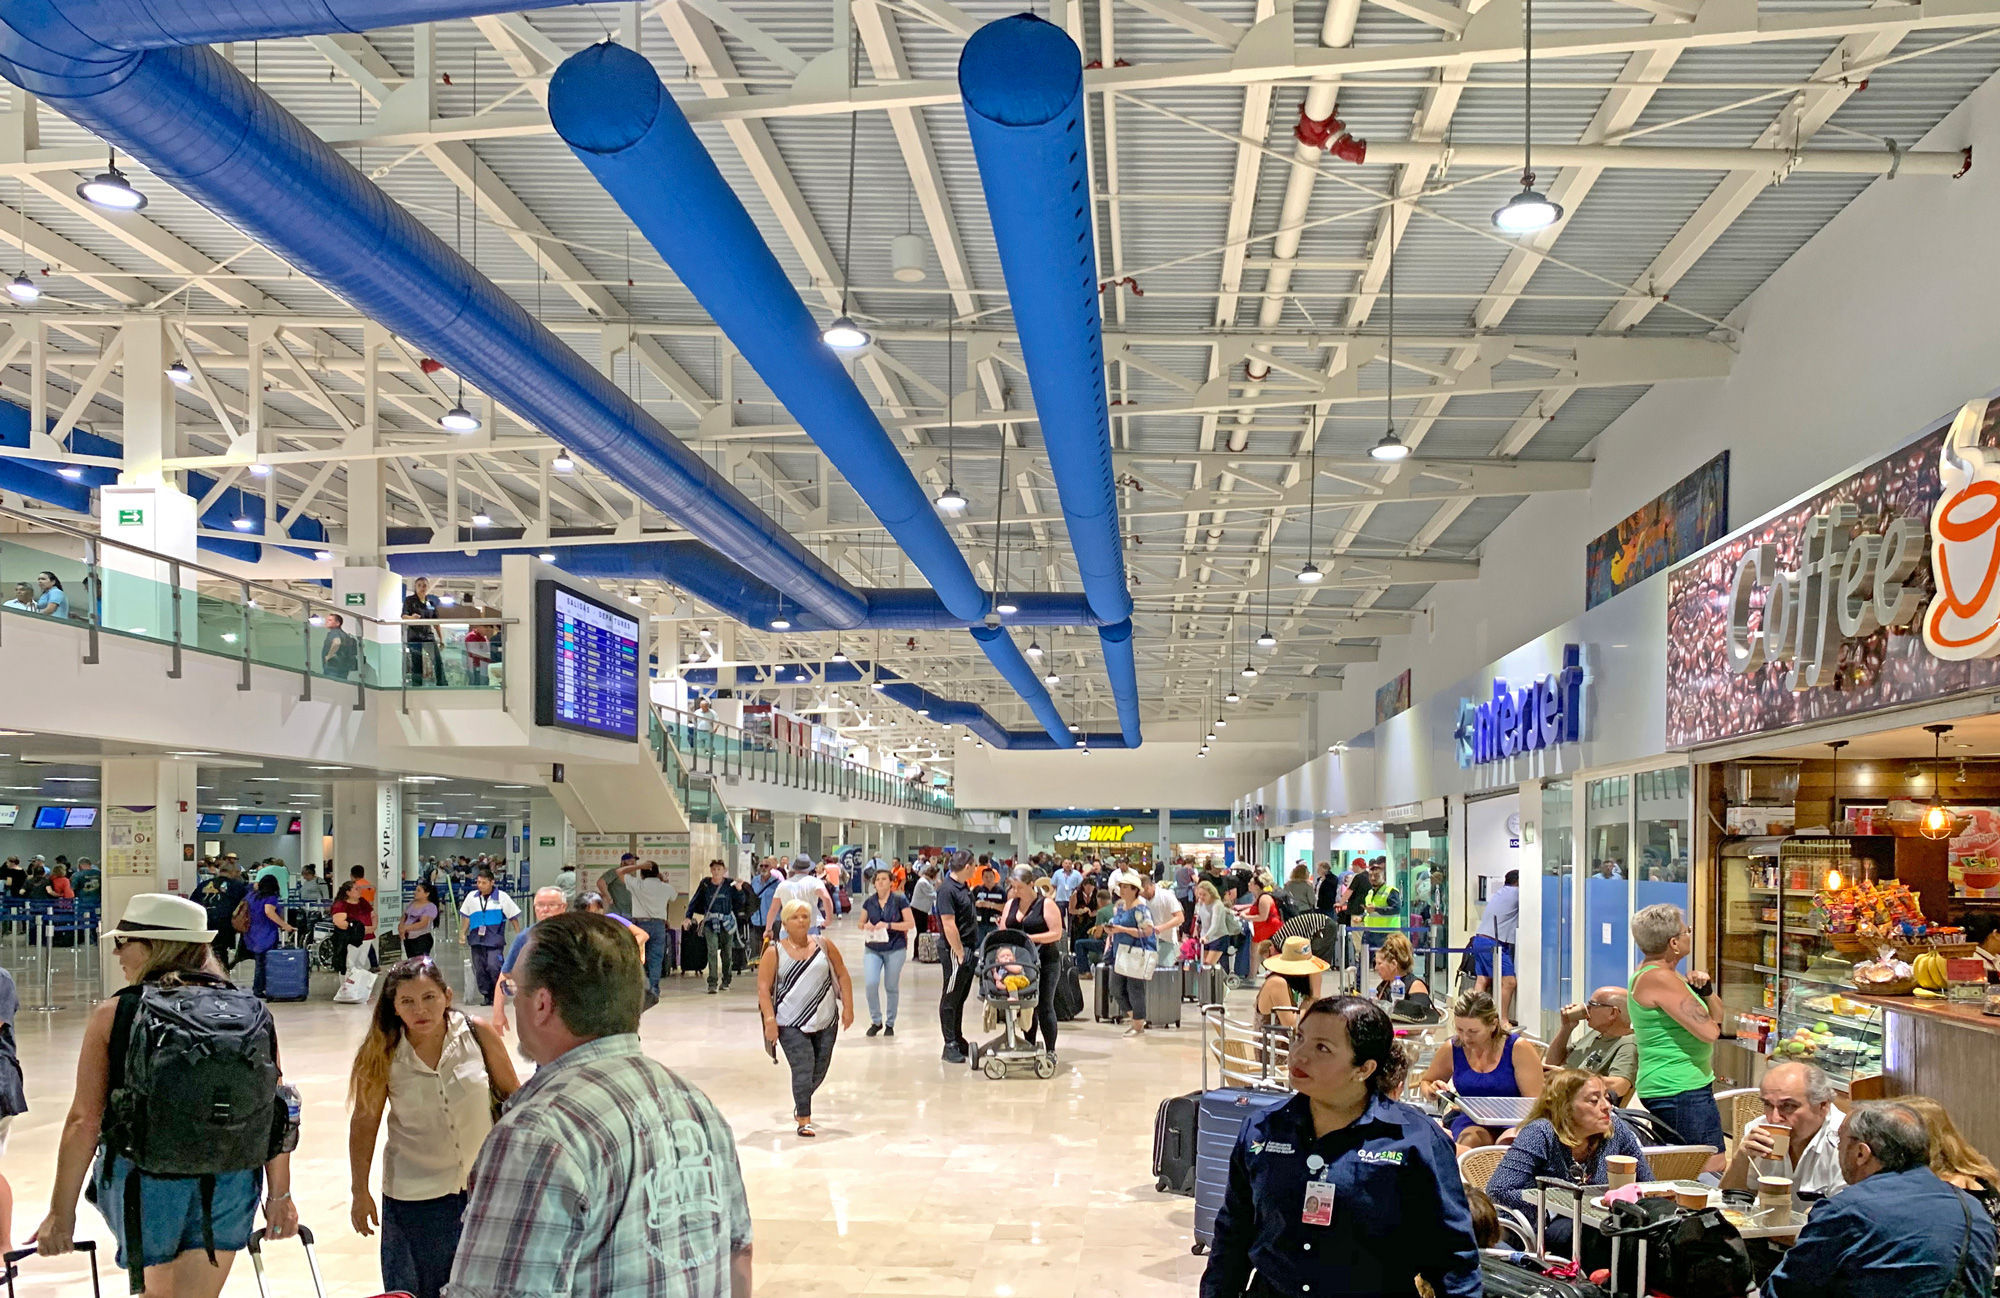 departure area airport, ceiling view